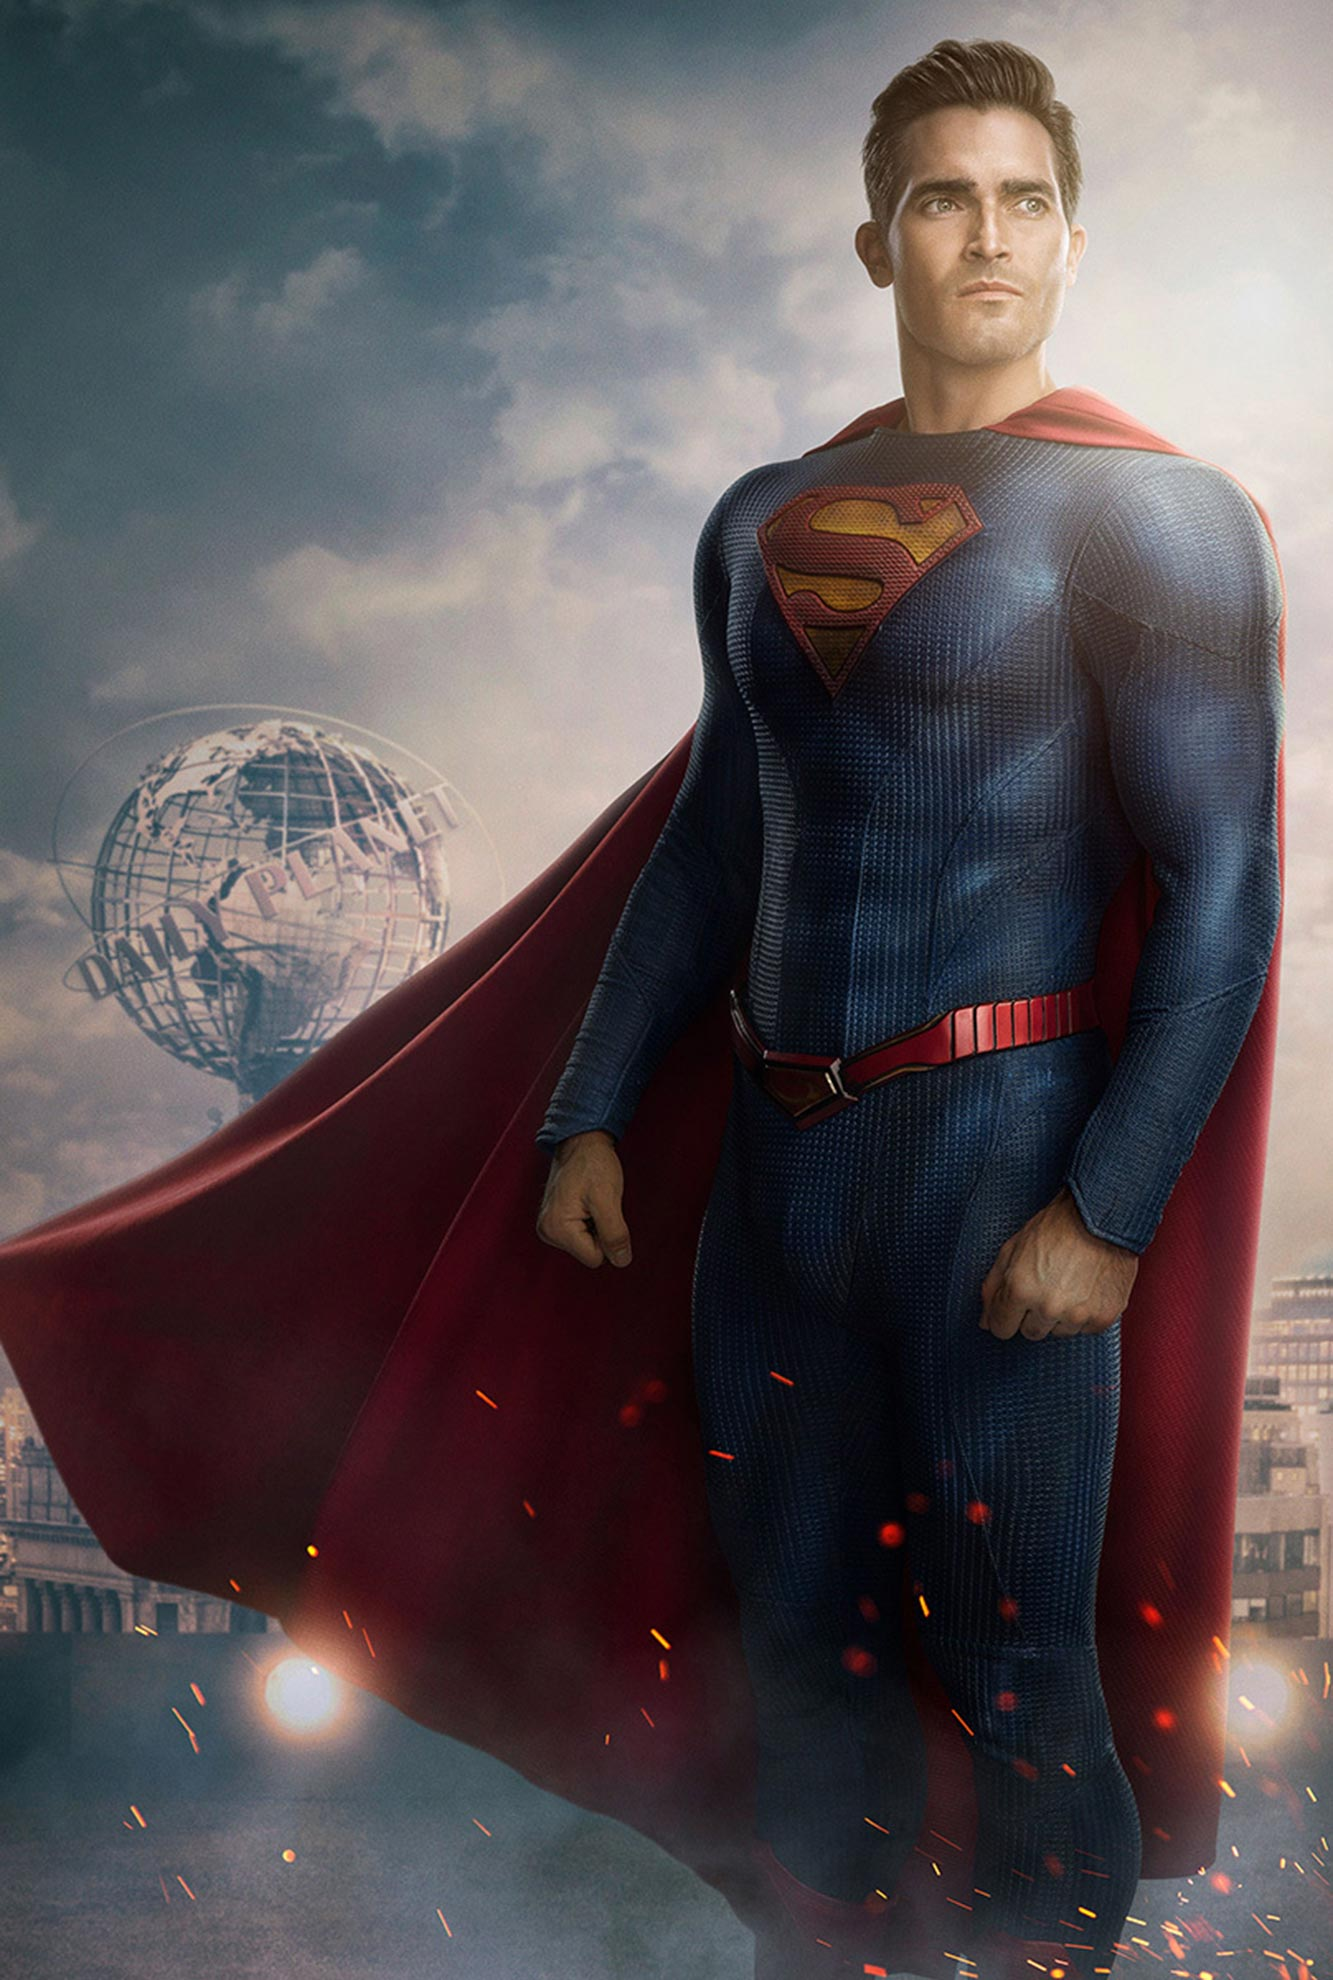 Superman and Lois Tyler Hoechlin new suit